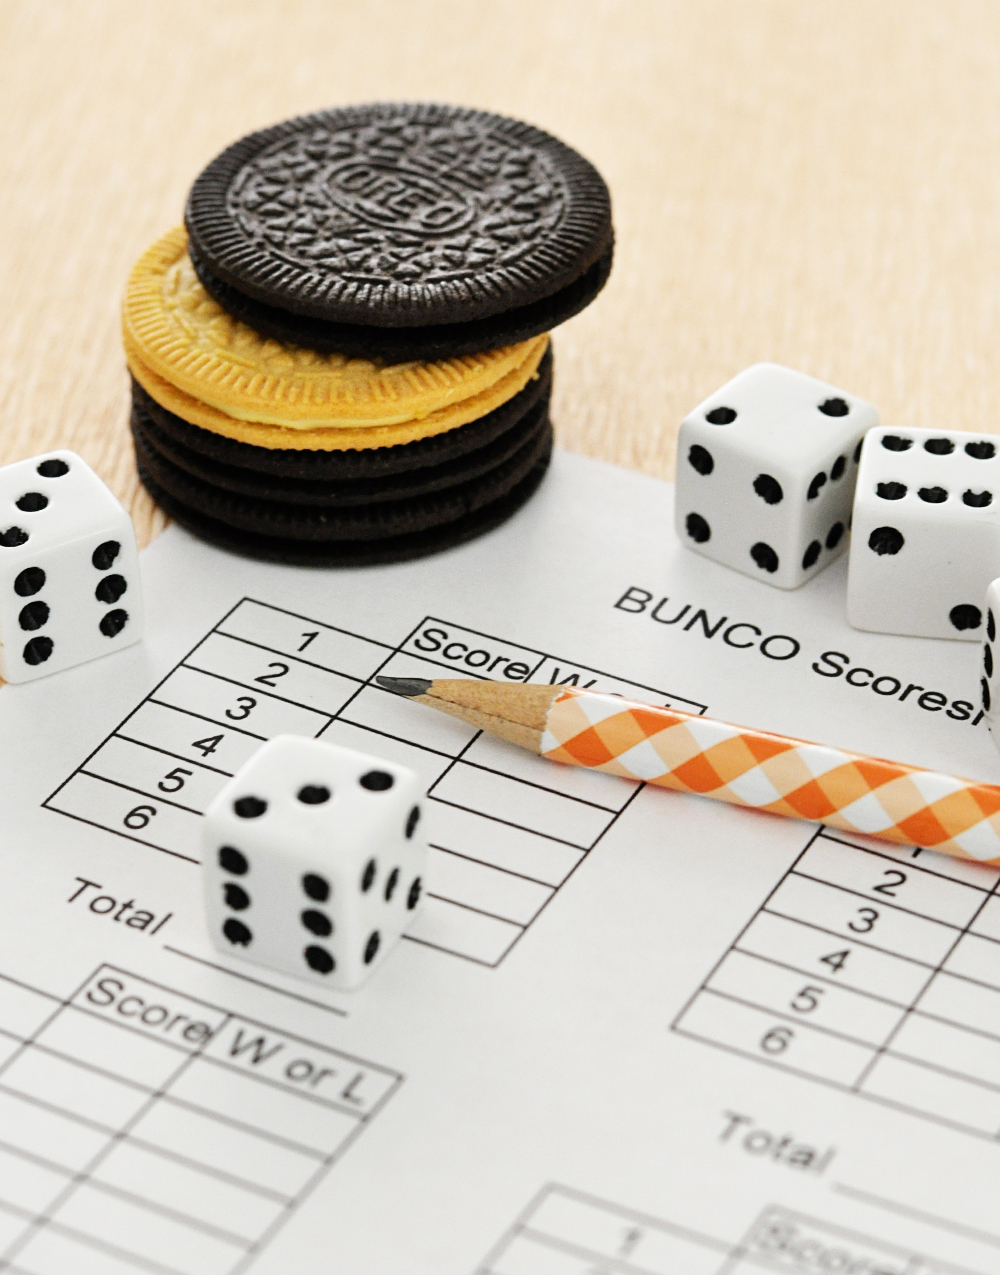 bunco night + OREO Thins at Kroger = the perfect way to make time for myself!